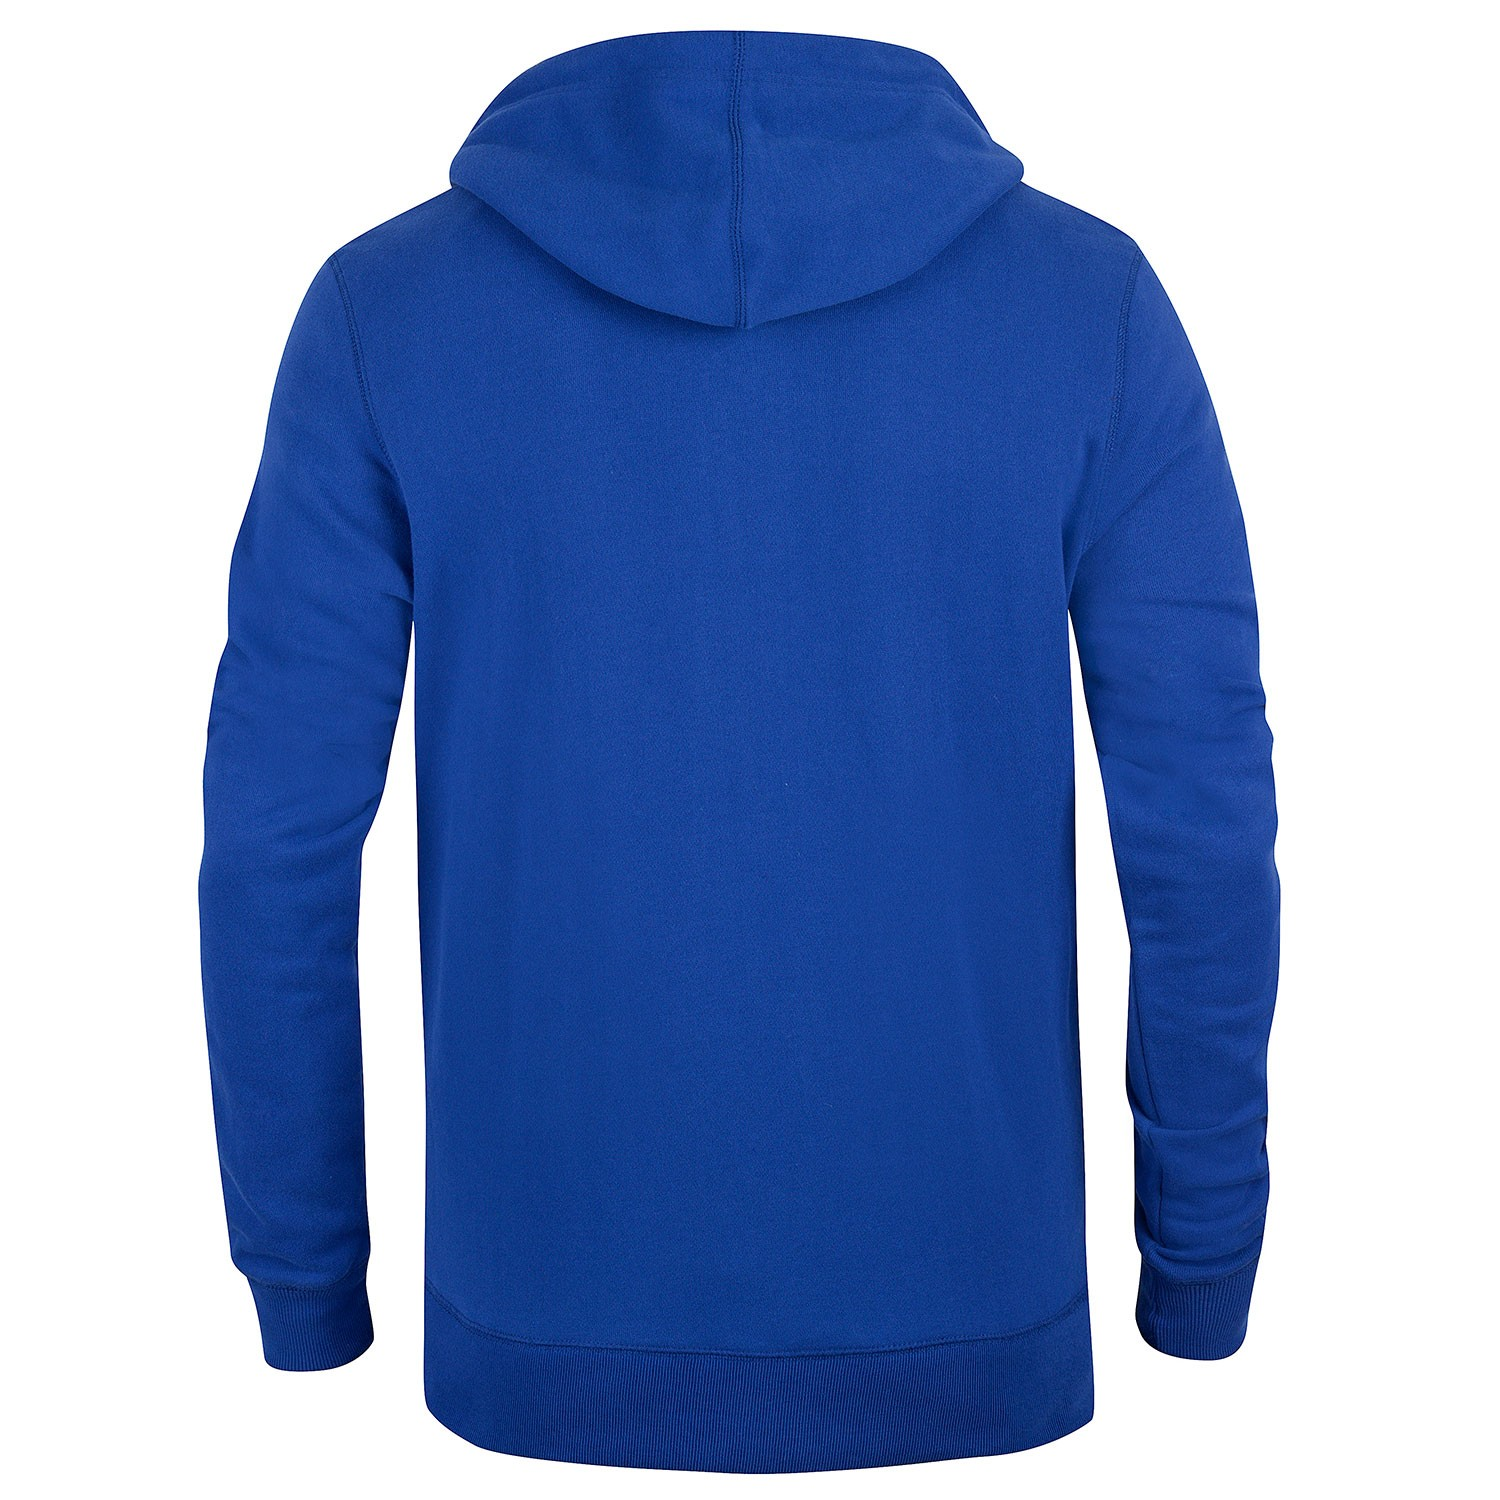 Mens Plain Blue Full Zip Hoodie Turner- Free Delivery Over u00a320 - Urban Beach